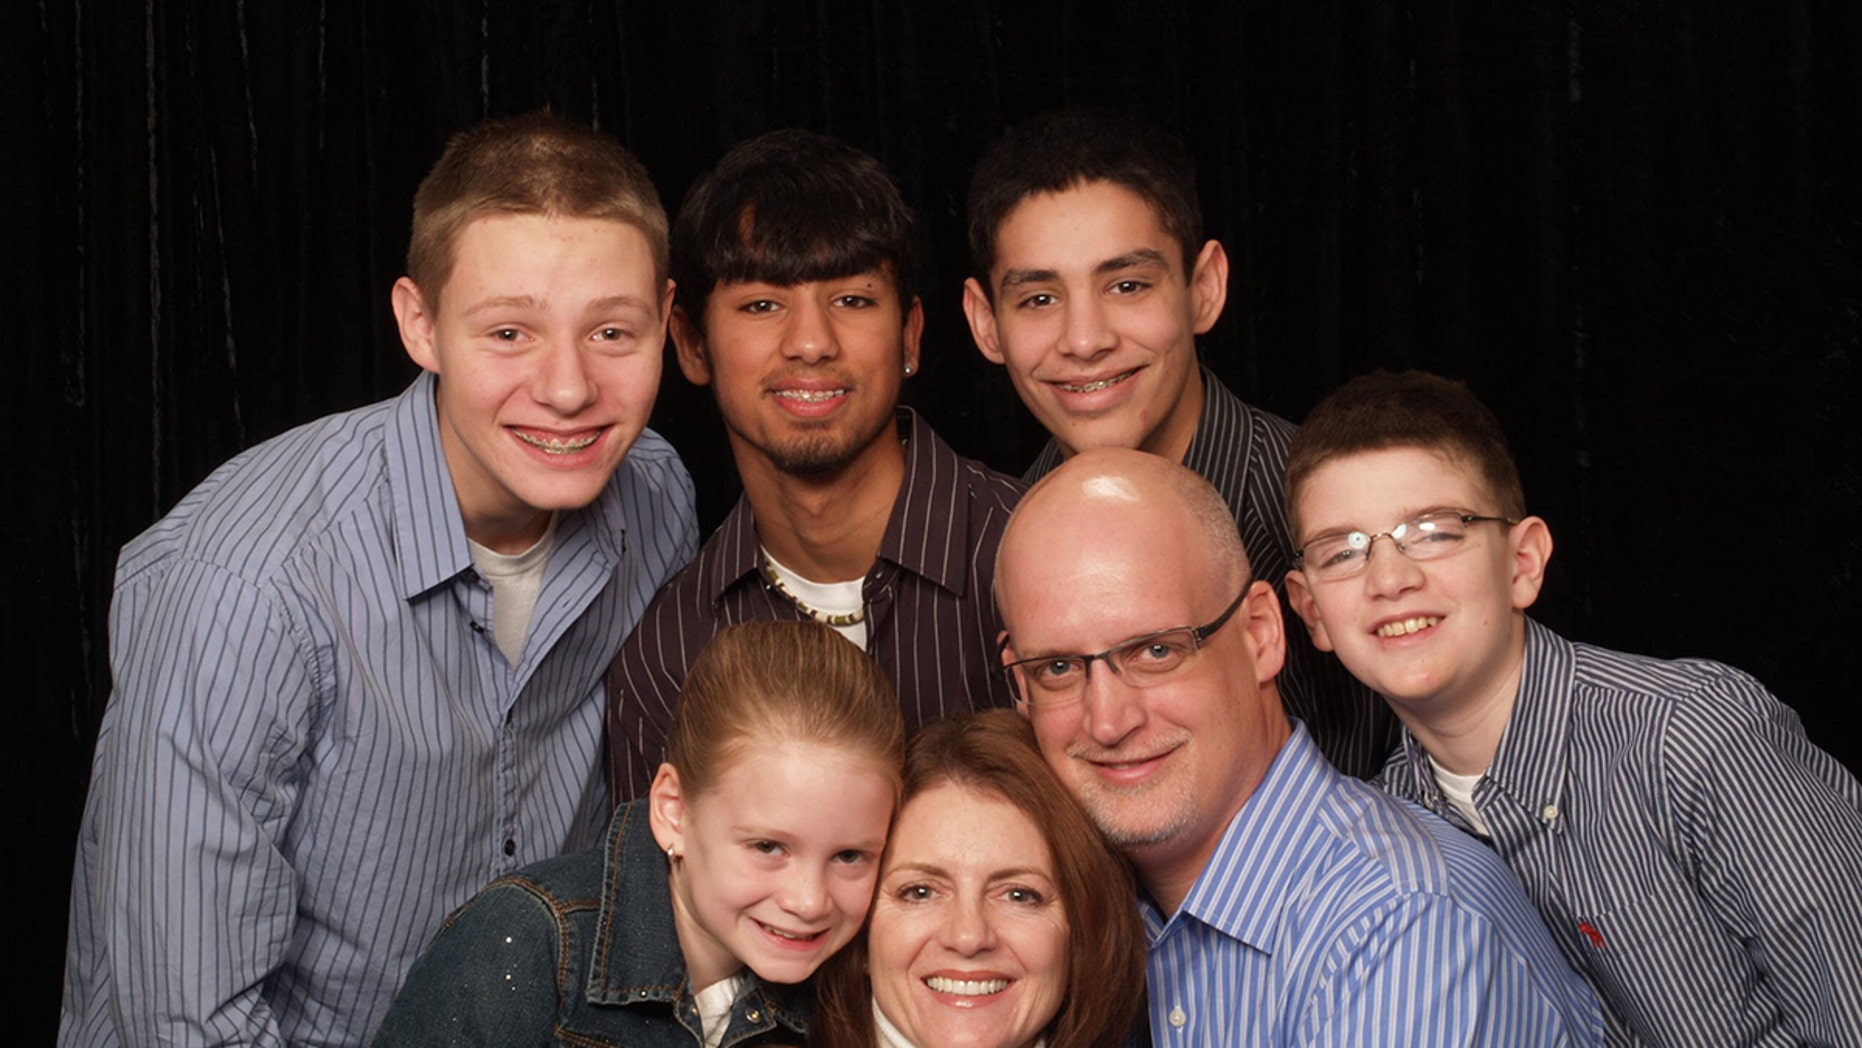 Kevin Williamson with his wife, Marcia, and their five children: Aidan, 20, Seth 18, who are adopted, Riley, 18, Mitch, 15, and Ainsley, 11.